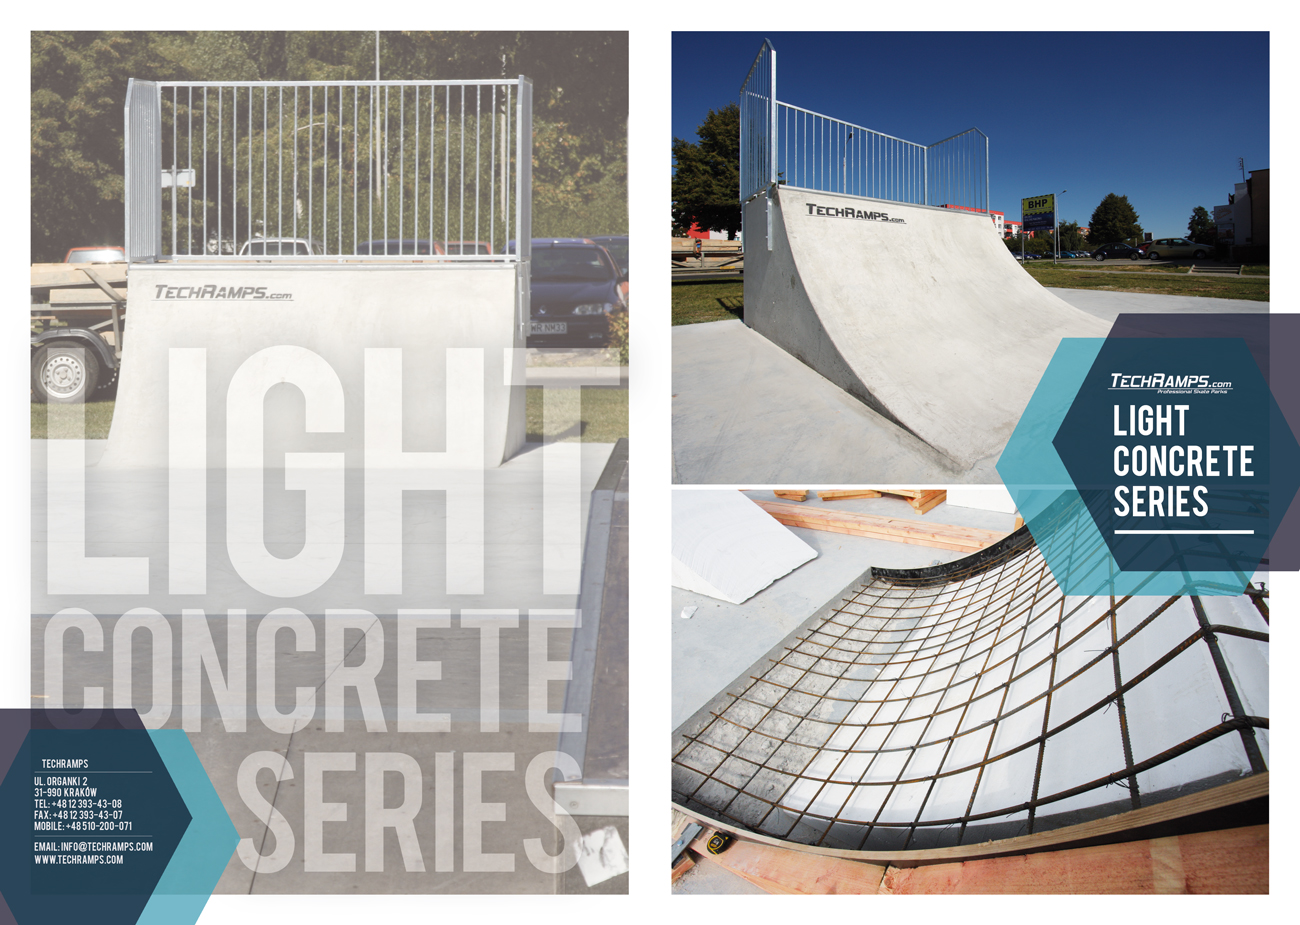 Skatepark - Light Concrete Series